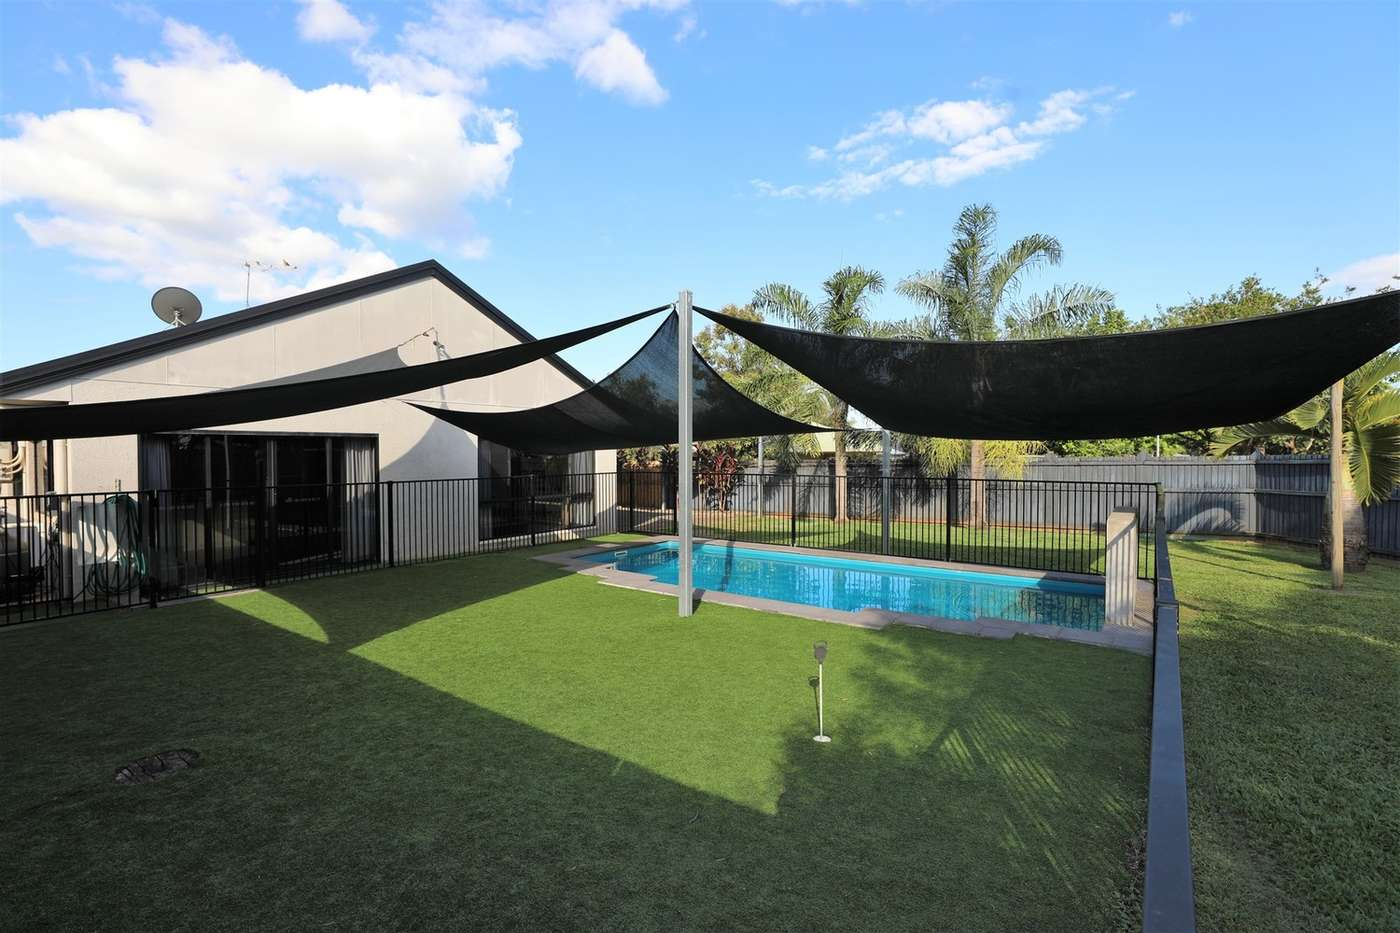 Main view of Homely house listing, 29 Savage Street, Edmonton, QLD 4869